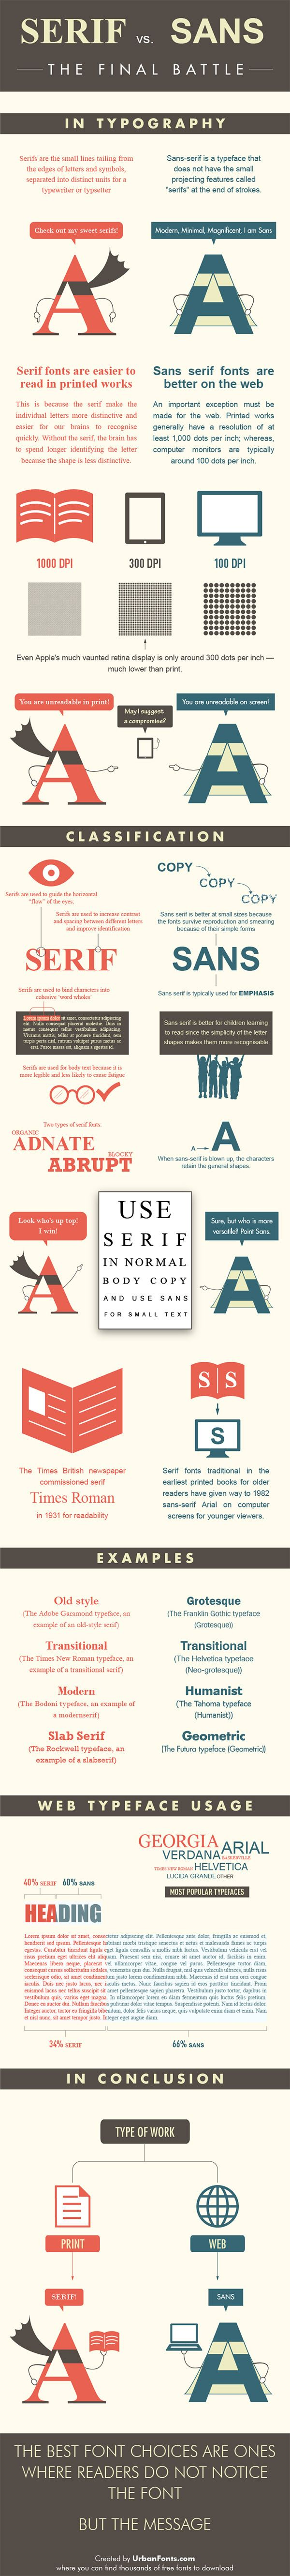 Serif vs Sans Serif—I don't necessarily agree with this, but the topic is near and dear to my heart.